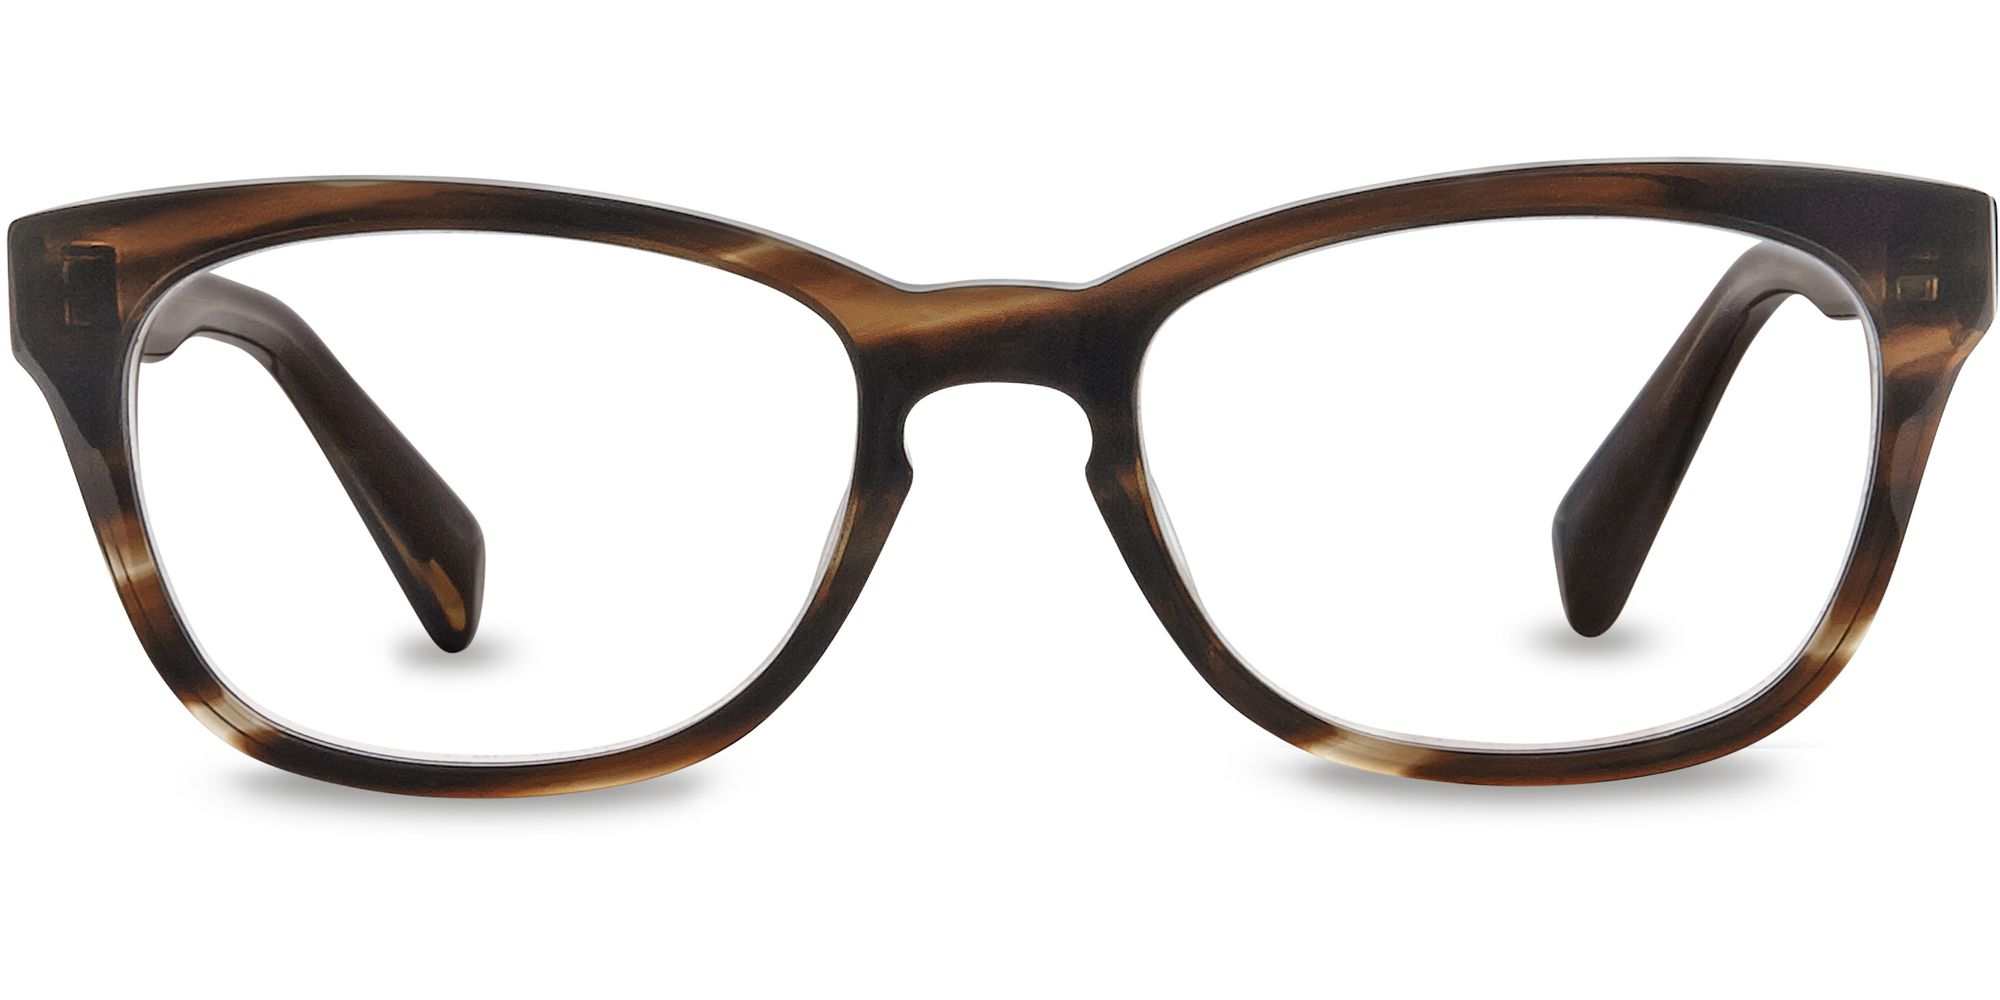 Warby Parker Finch Eyeglasses in Striped Molasses for Women